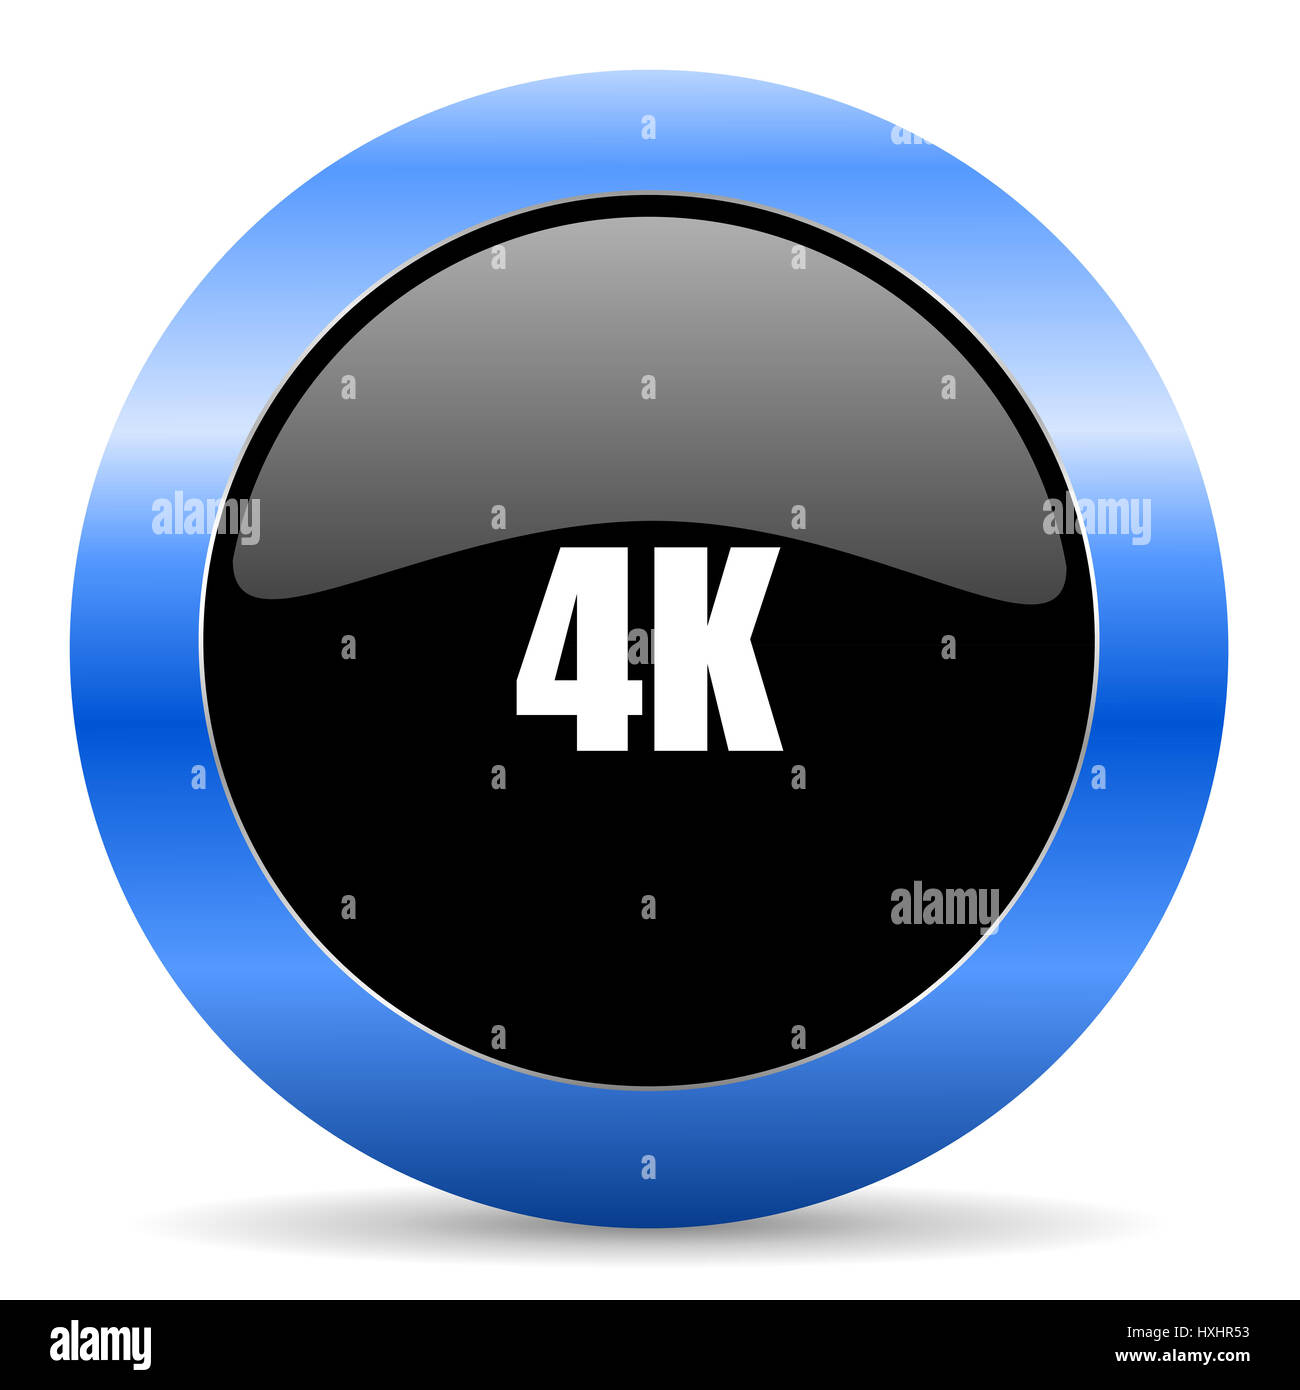 4k black and blue web design round internet icon with shadow on white background. - Stock Image